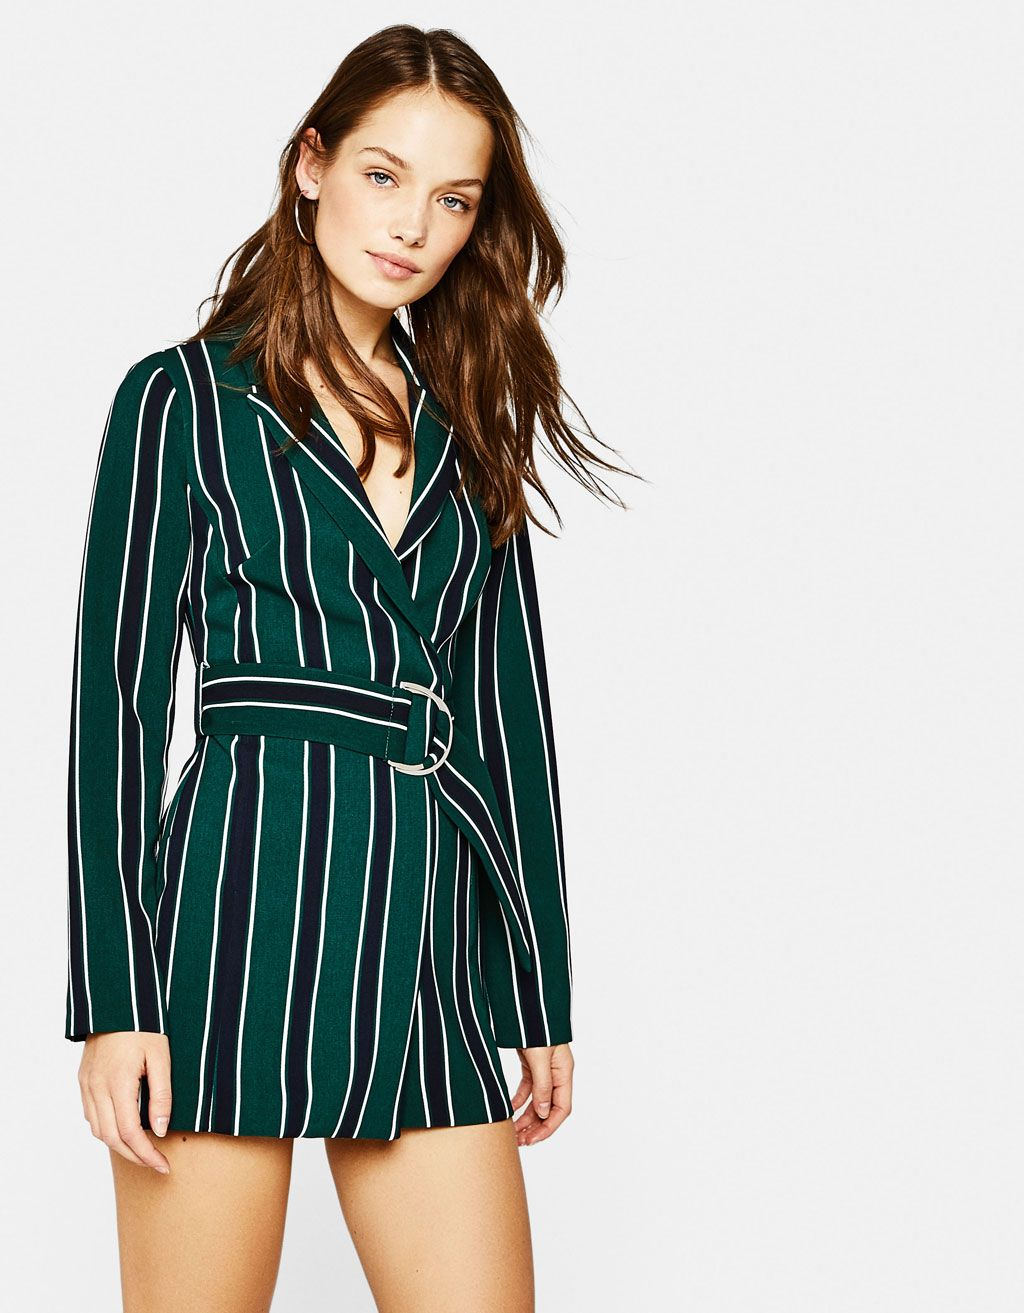 863d80be0e50 Blazer-style romper with belt. Discover this and many more items in Bershka  with new products every week